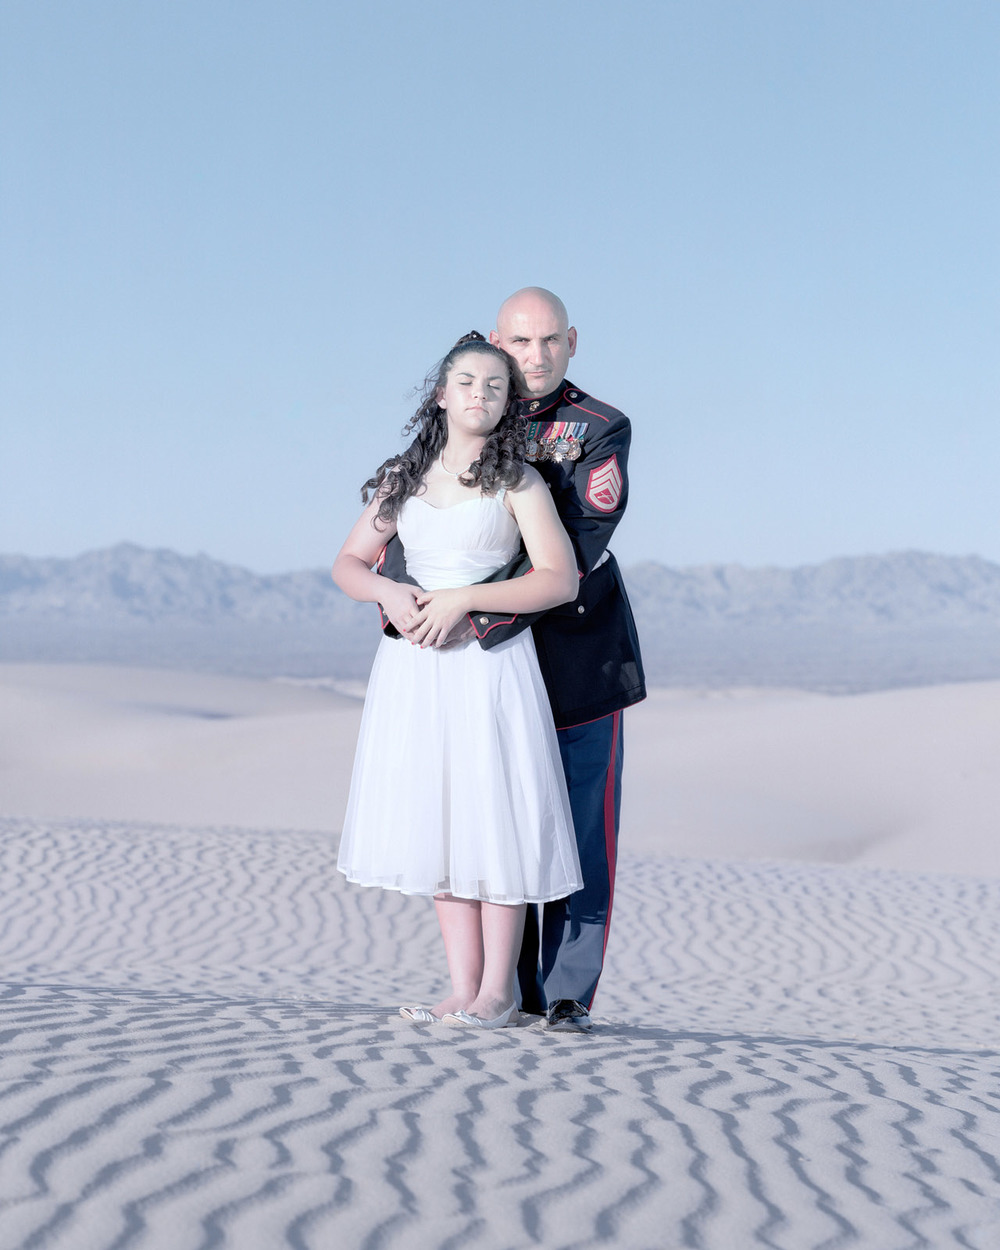 Miranda & Jody Heckert, Yuma, Arizona